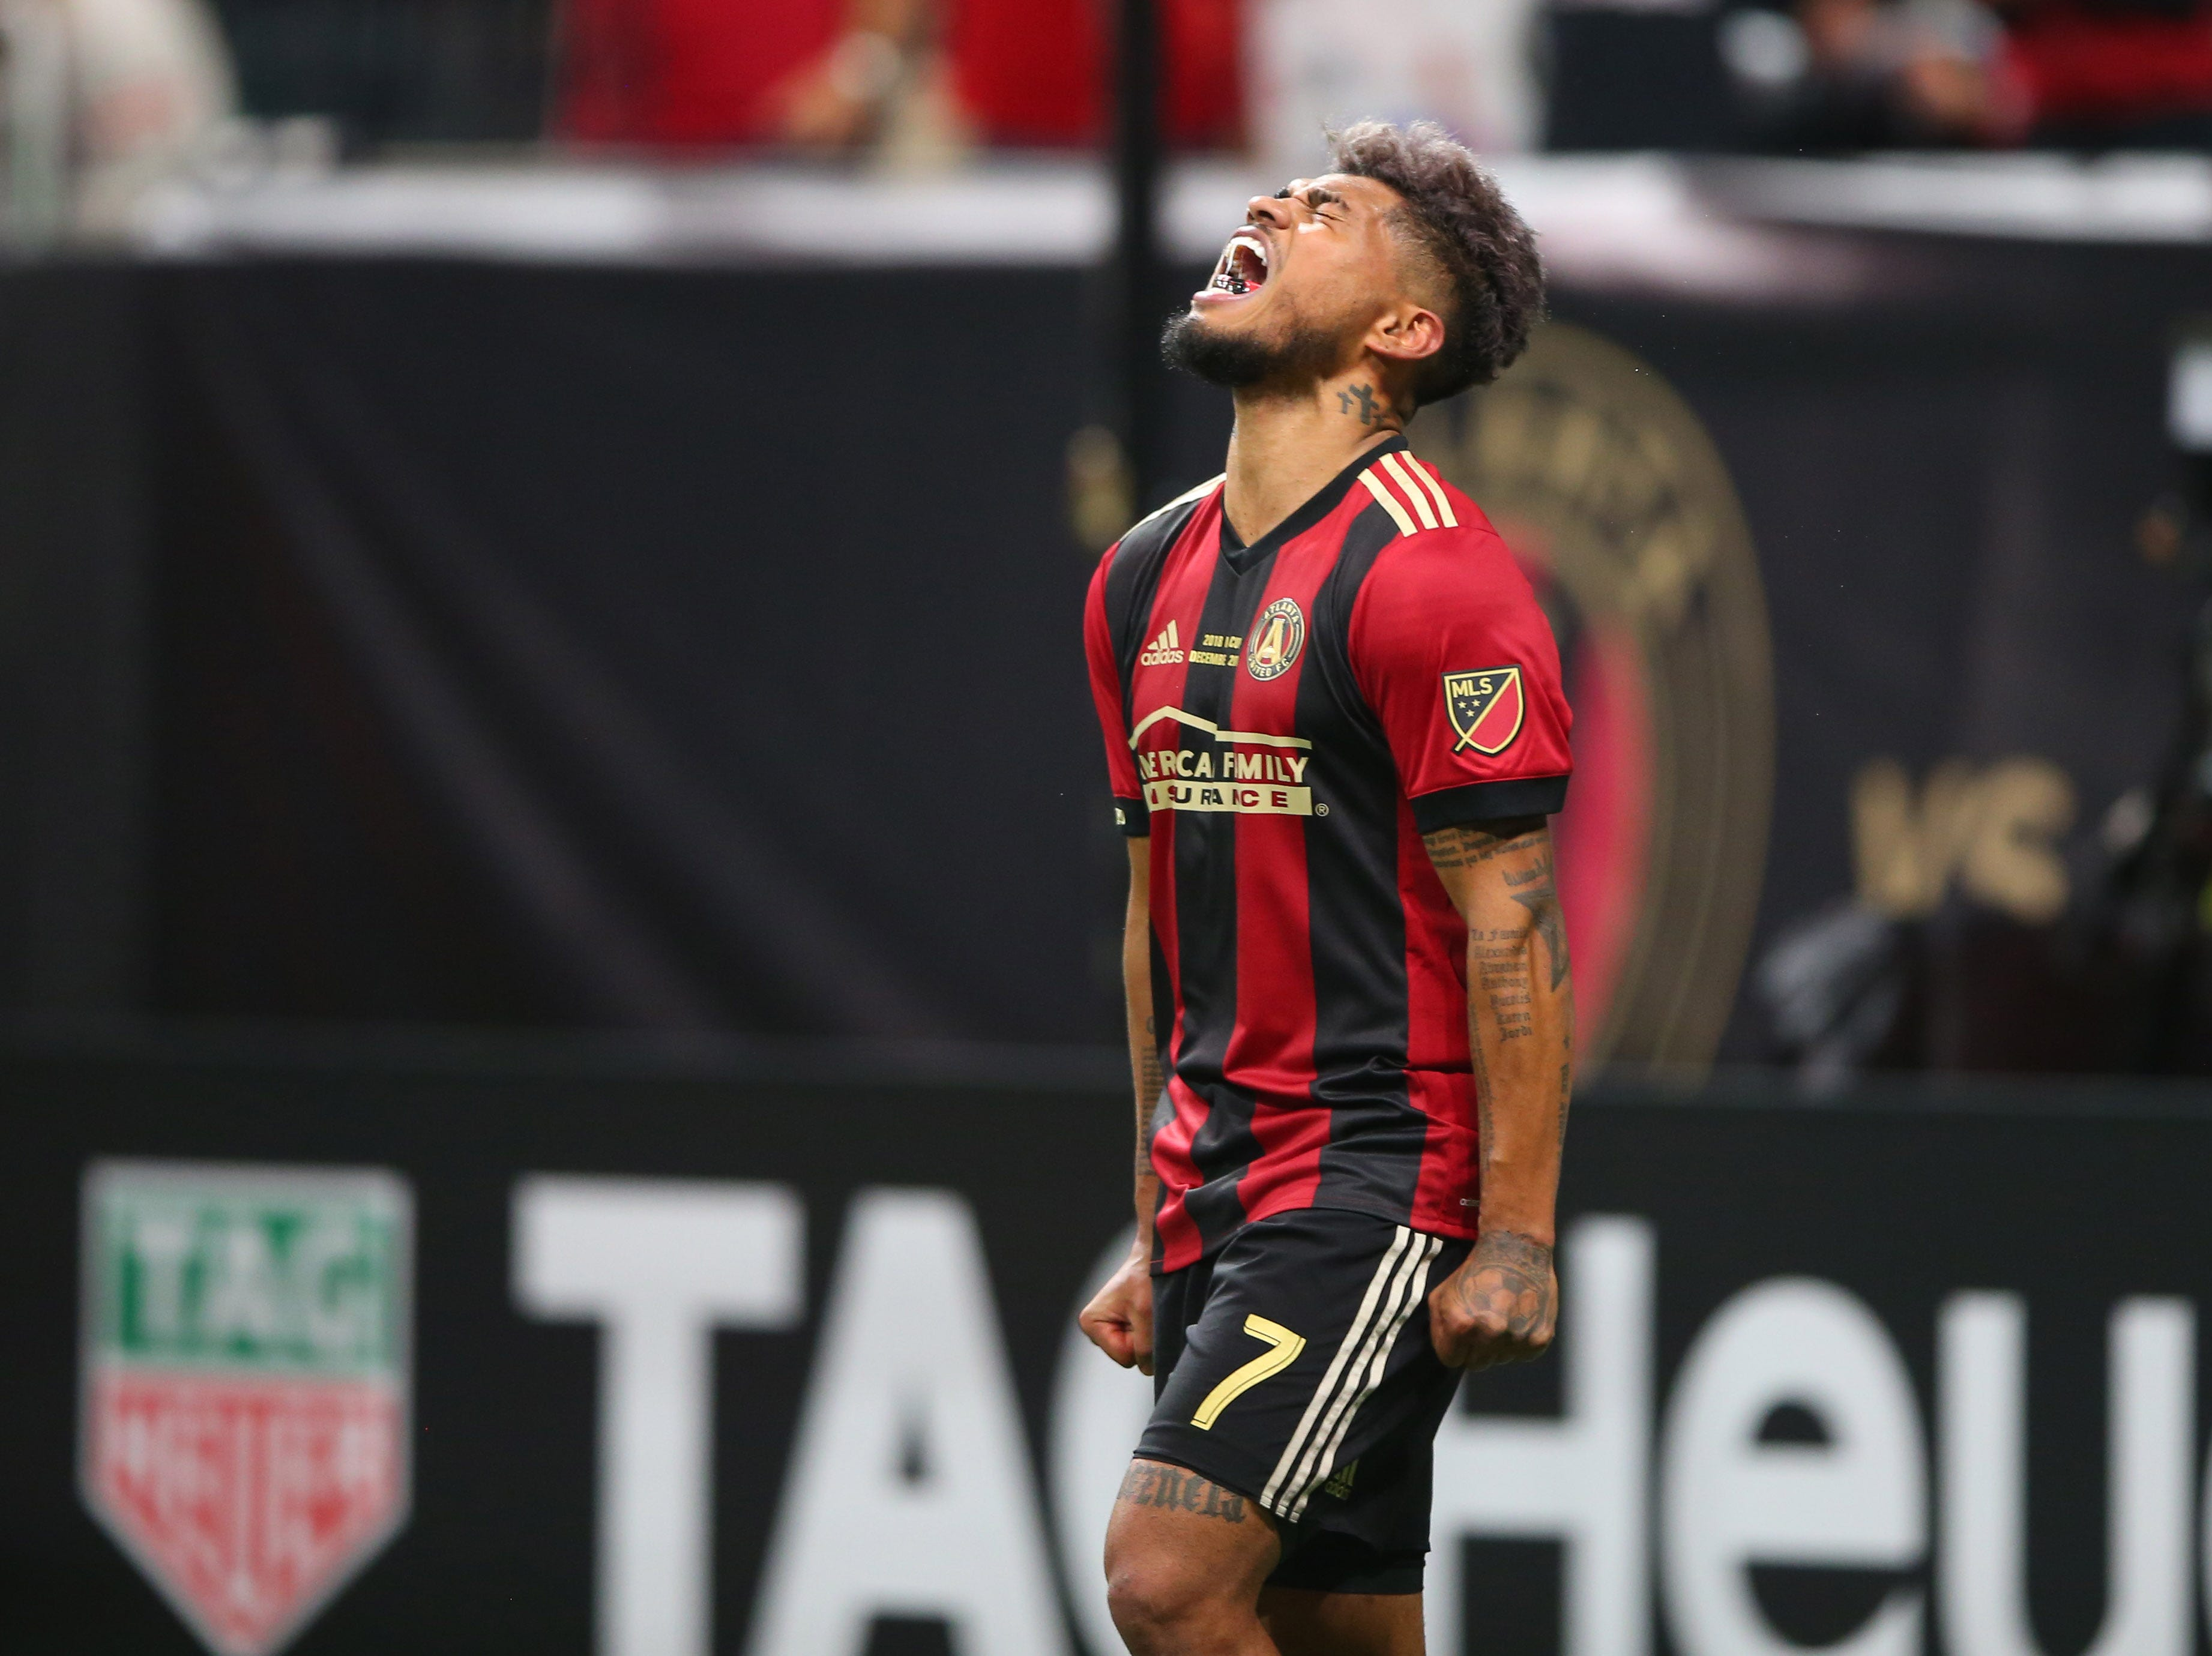 Atlanta United forward Josef Martinez celebrates after scoring a first-half goal against the Portland Timbers in the 2018 MLS Cup championship game at Mercedes-Benz Stadium.